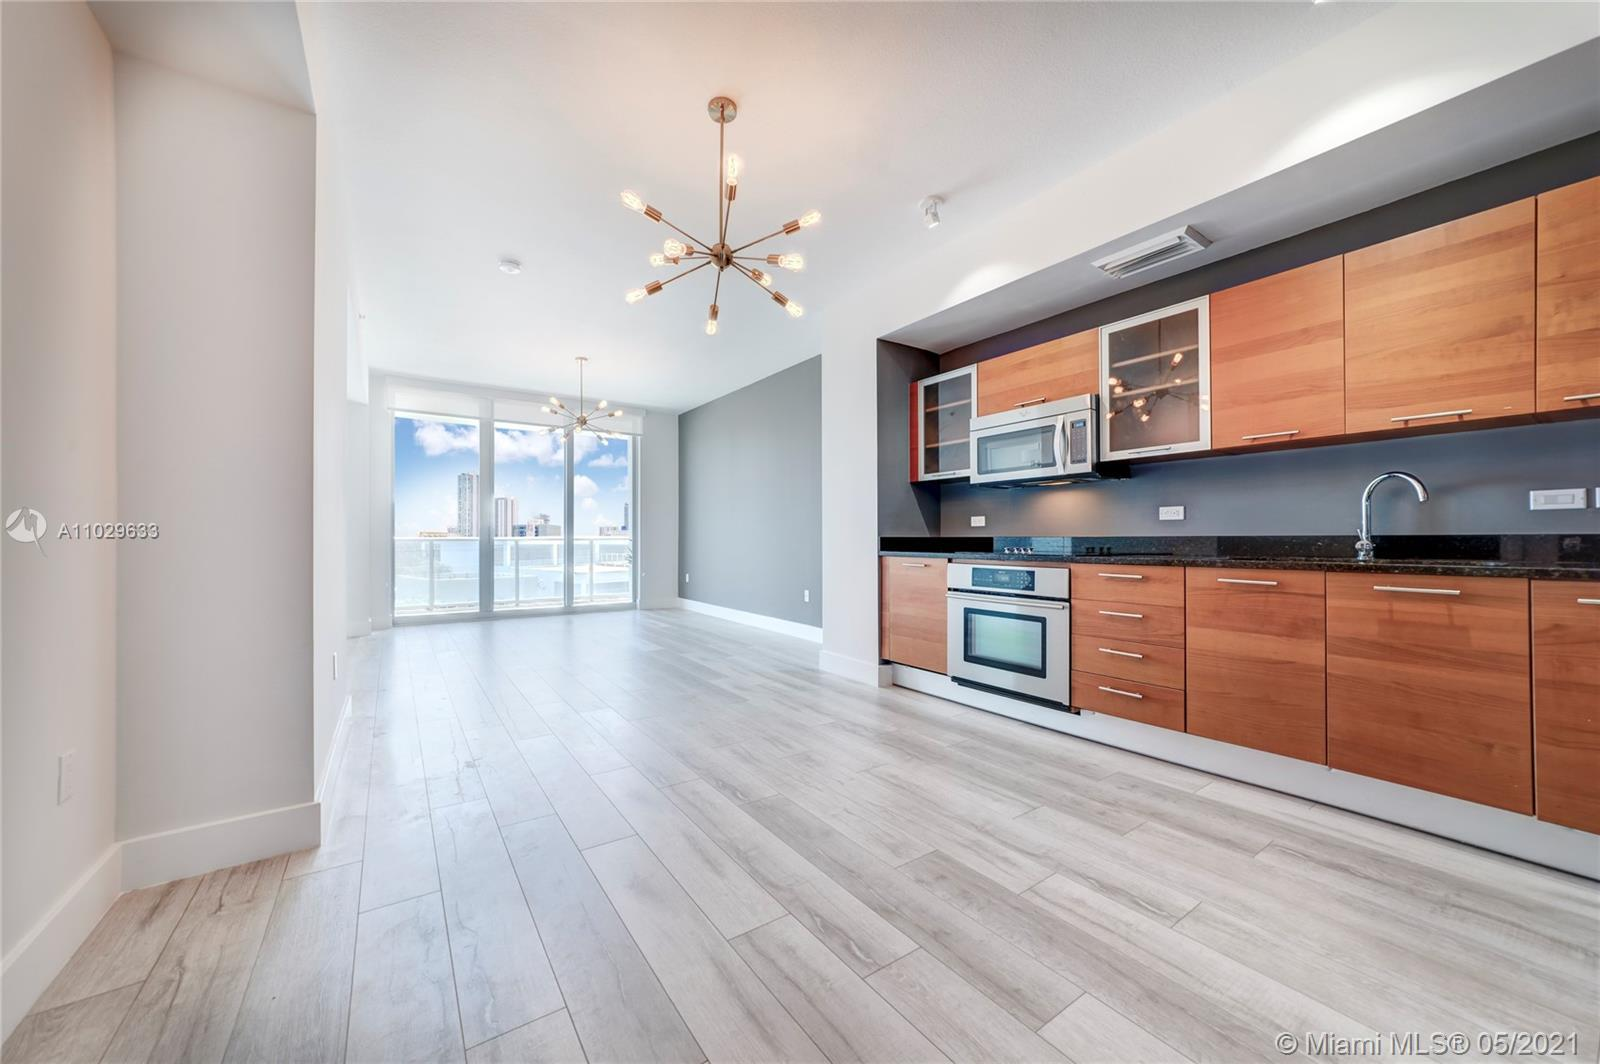 ONE OF A KIND. Completely renovated 1bd/1.5bath condo for sale in prestigious Midtown Miami. BRAND N